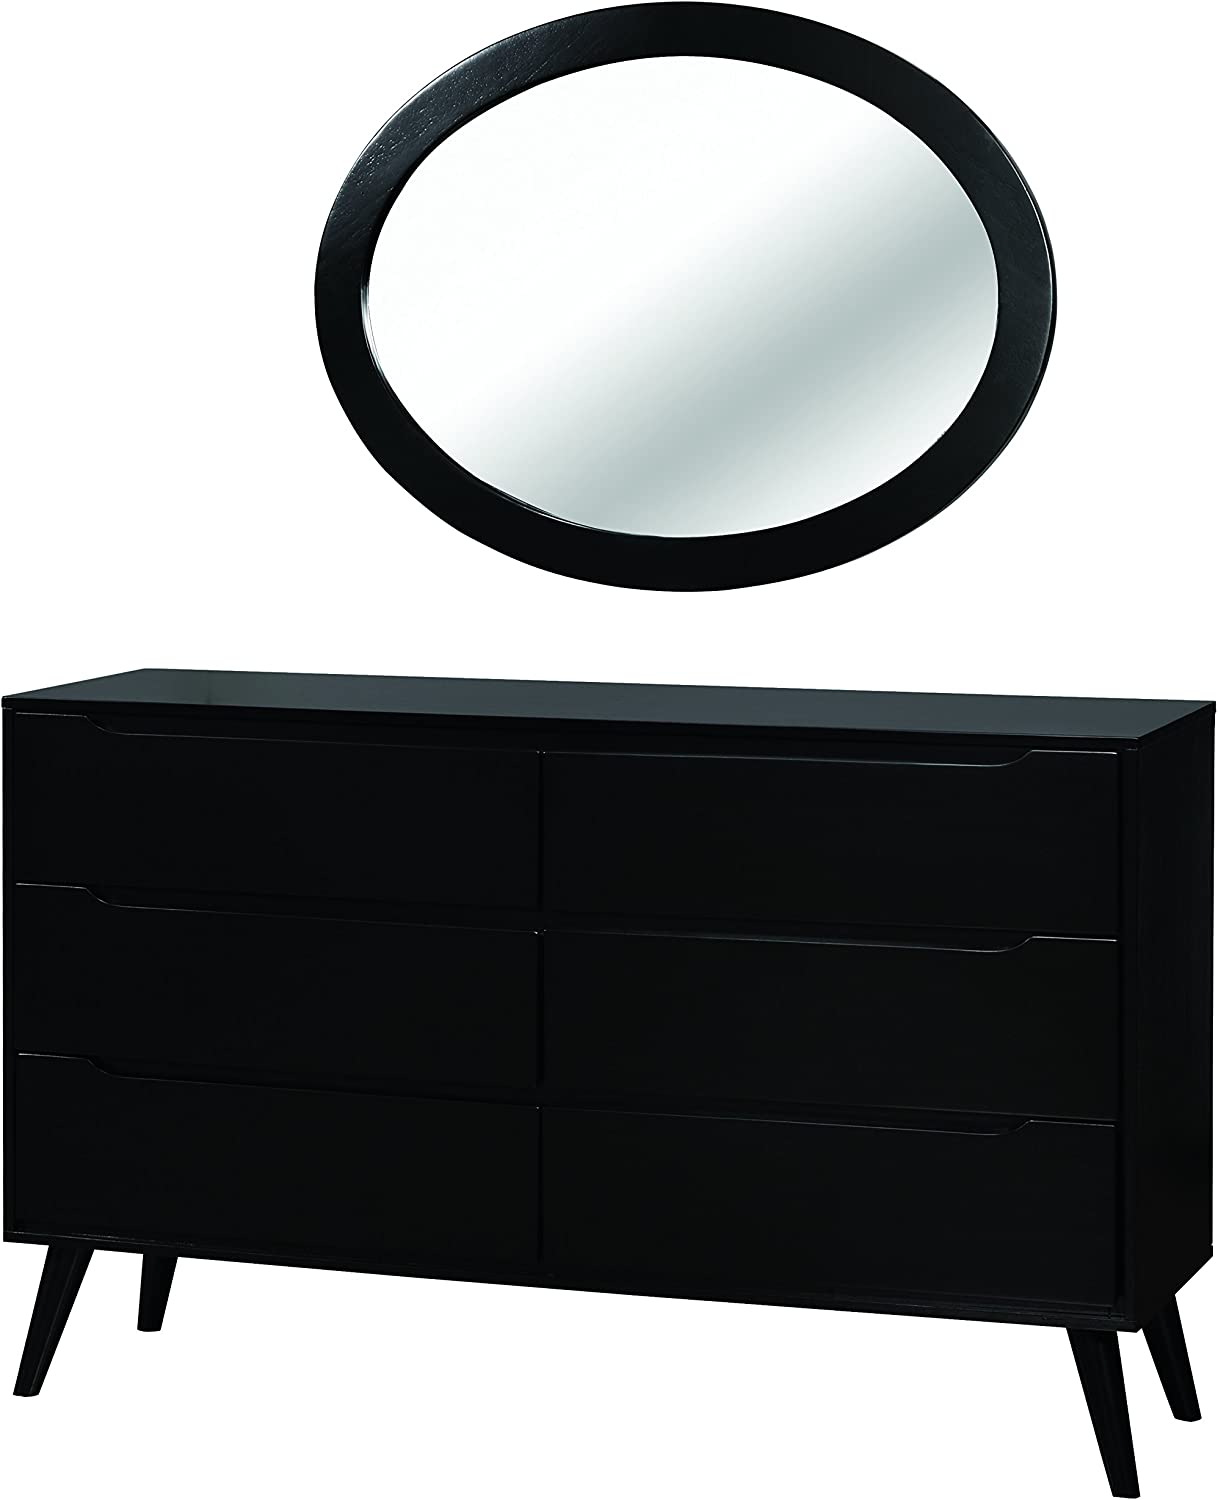 Inside HOMES Black Out Debonaze Queen 4-Piece Bedroom Set with Oval Mirror